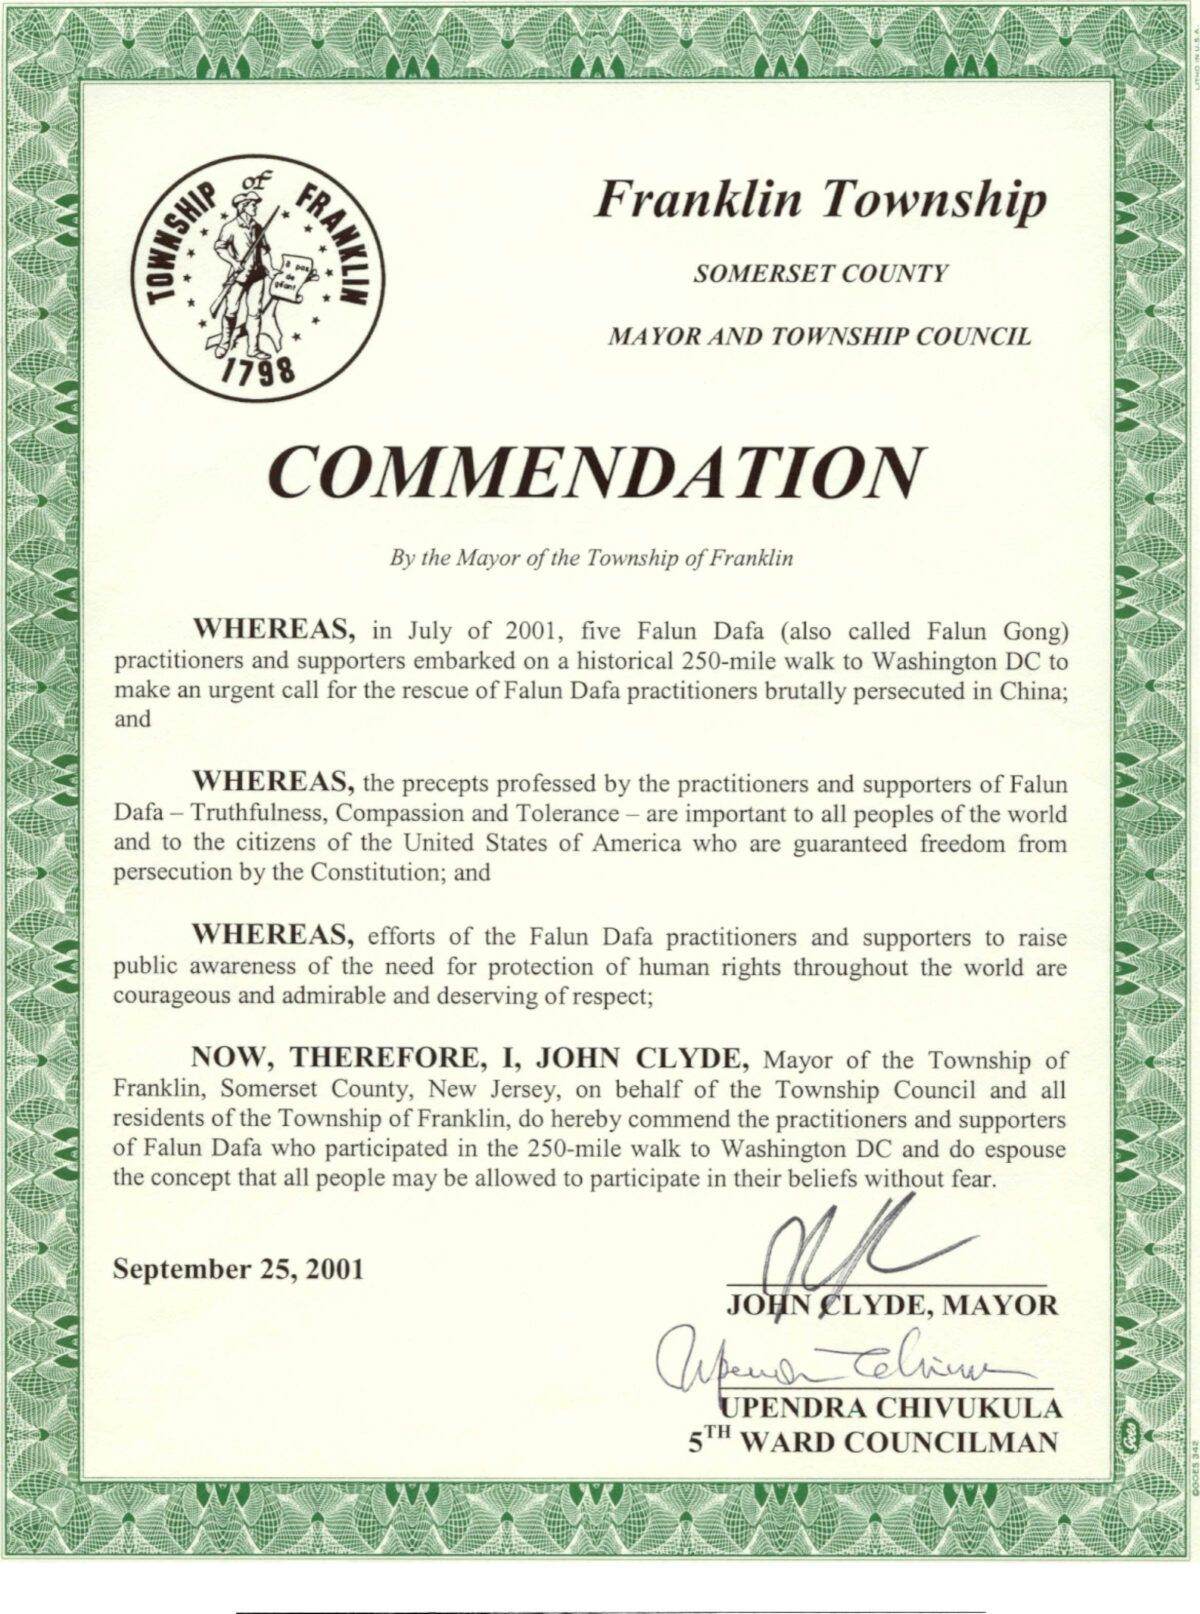 Clearwisdom Photo Archive With Regard To Life Saving Award Certificate Template Awards Certificates Template Letter Of Commendation Certificate Templates Life saving award certificate template